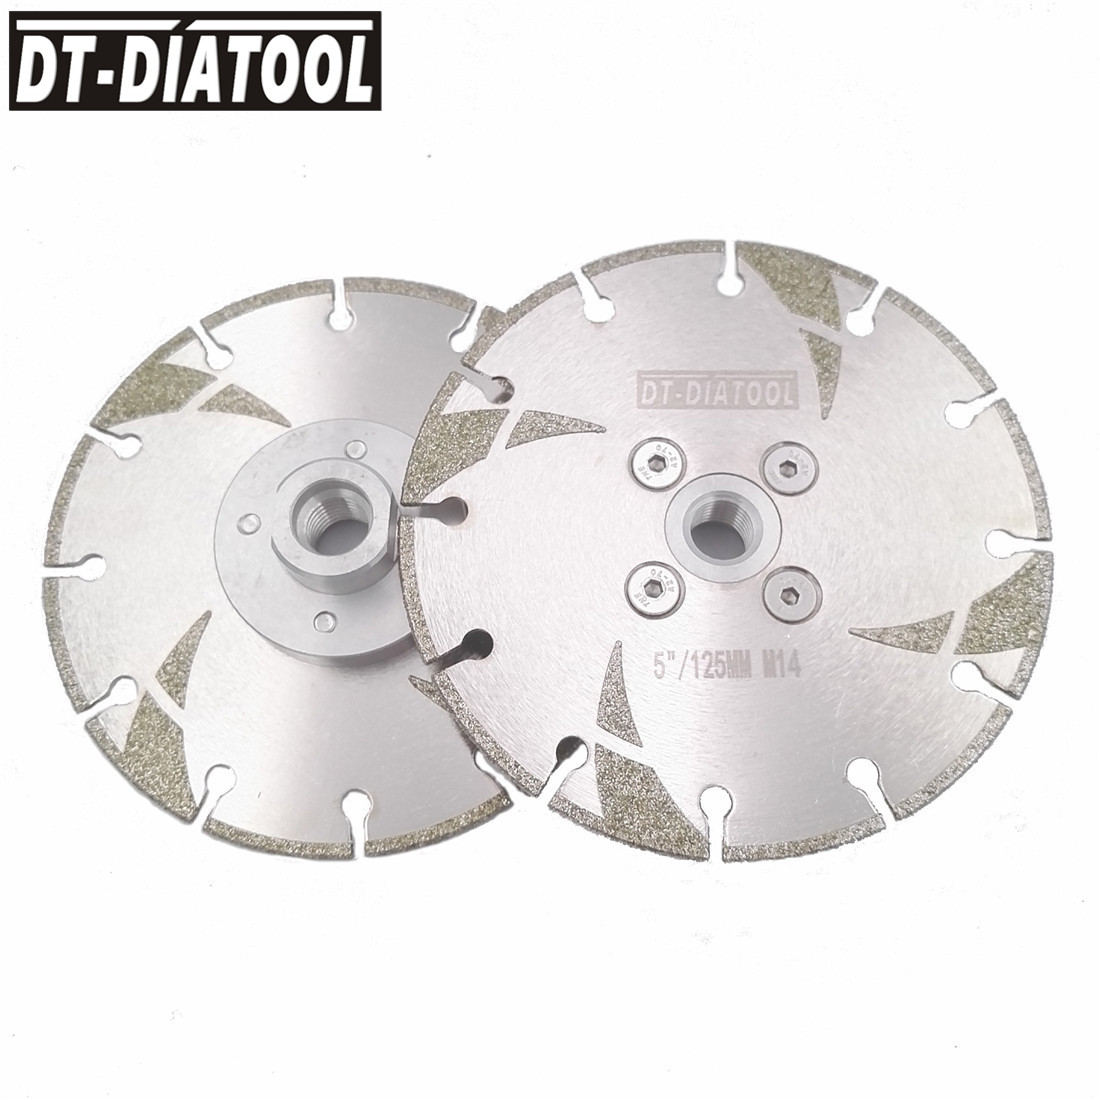 DT-DIATOOL 2pcs Dia125mm Dry Or Wet Coated High Quality Diamond Cutting Disc Saw Blade M14 Thread 5 Inch Grinding Wheel Marble